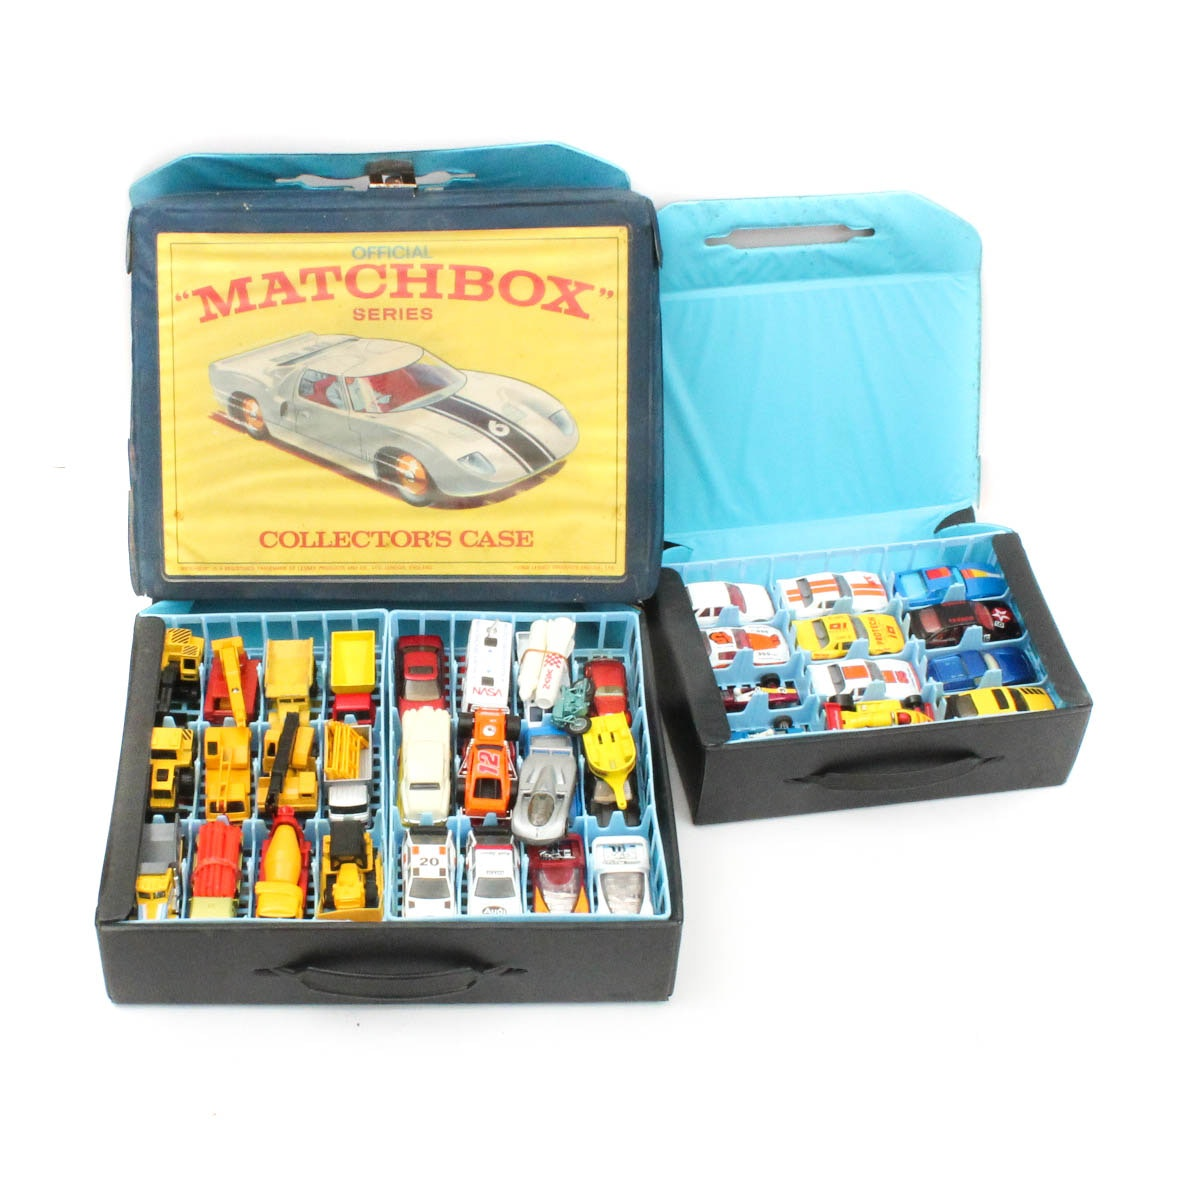 Vintage Matchbox Cars and Carrying Cases